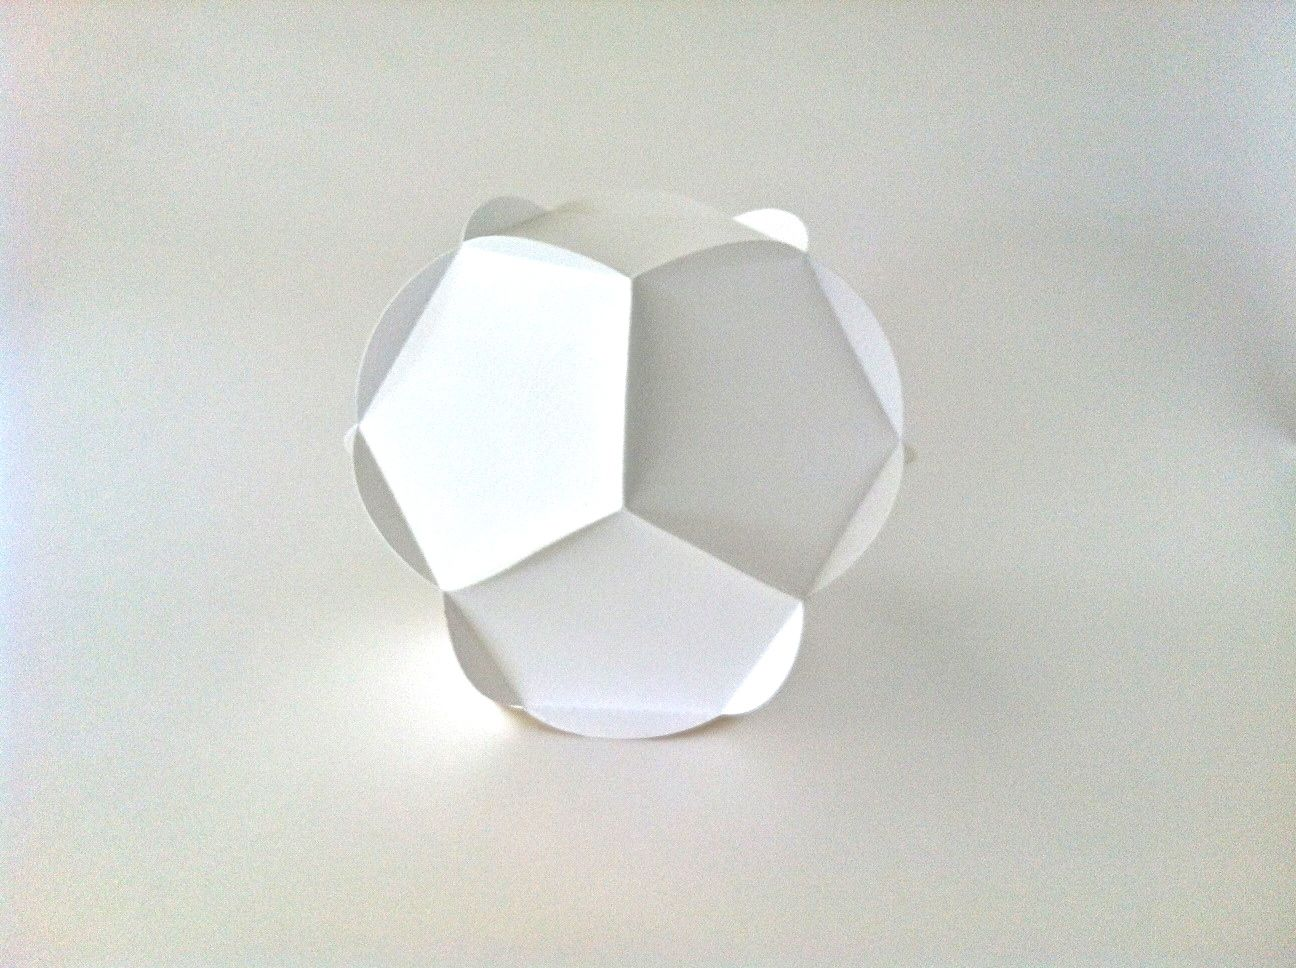 dodecahedron template - Google Search   BTBT   Pinterest ...